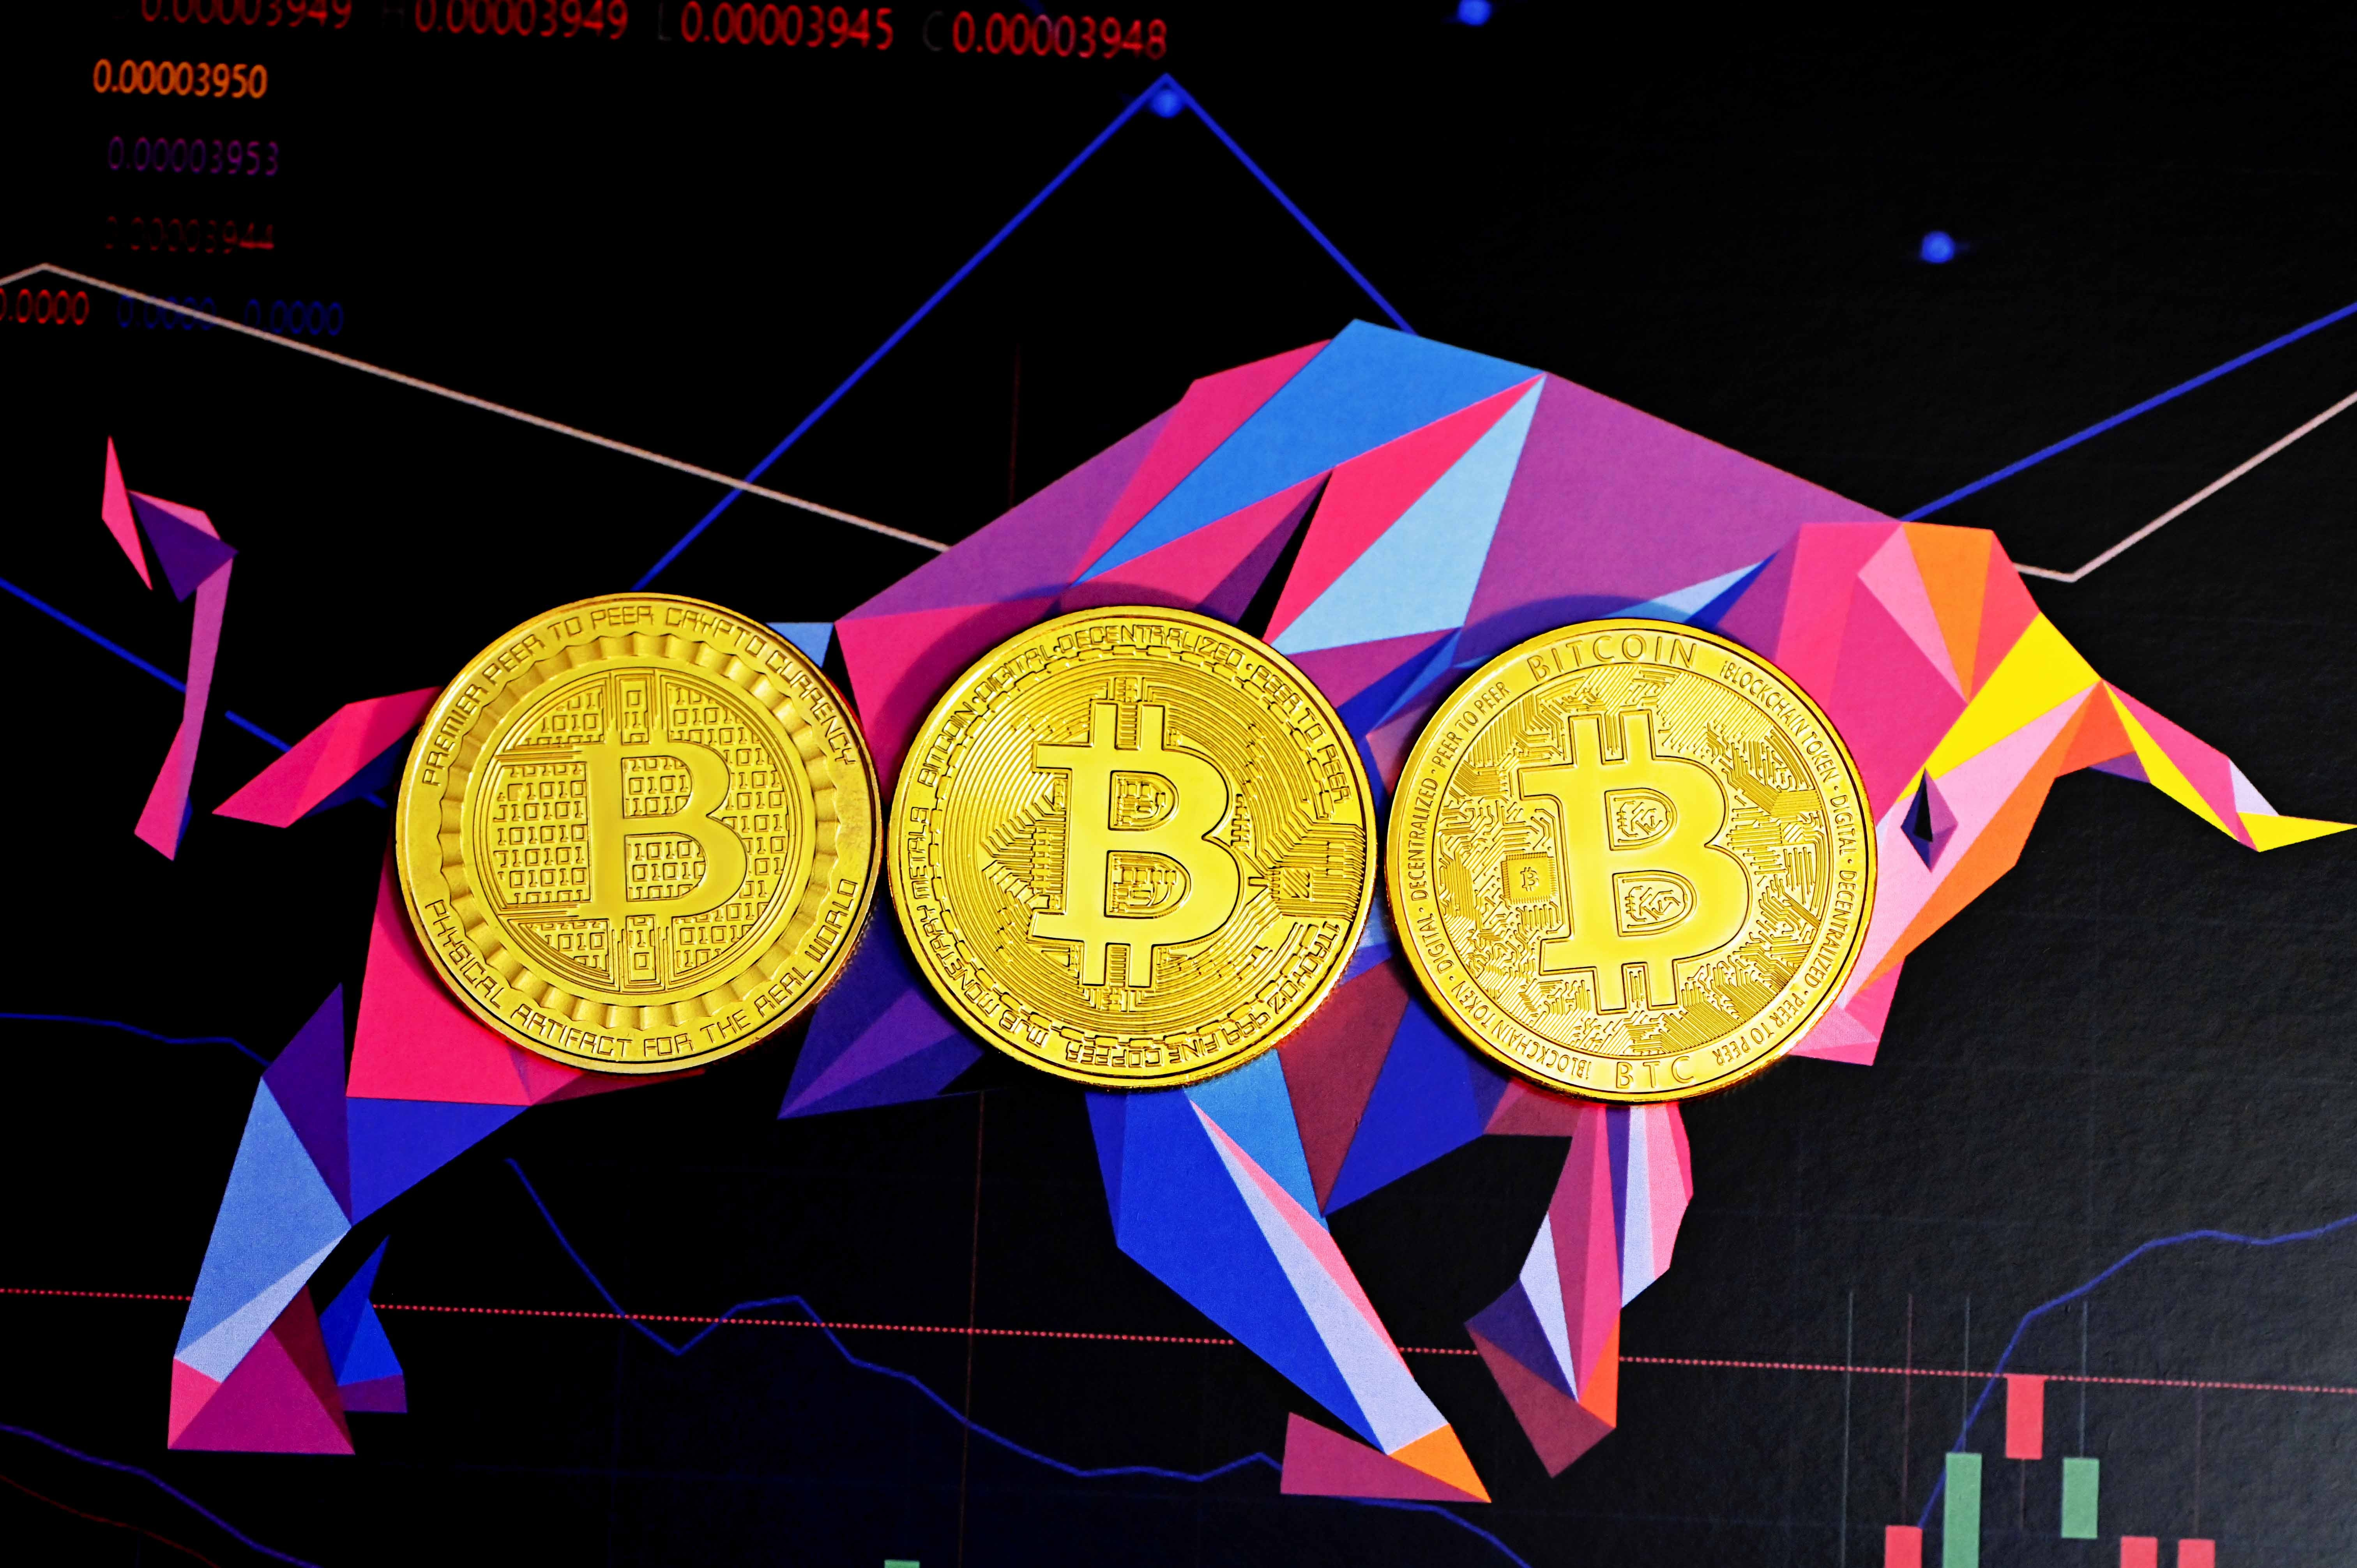 Bitcoin Jumps 10% In 24 Hours, Dead Cat Bounce Or Real Move Ahead?